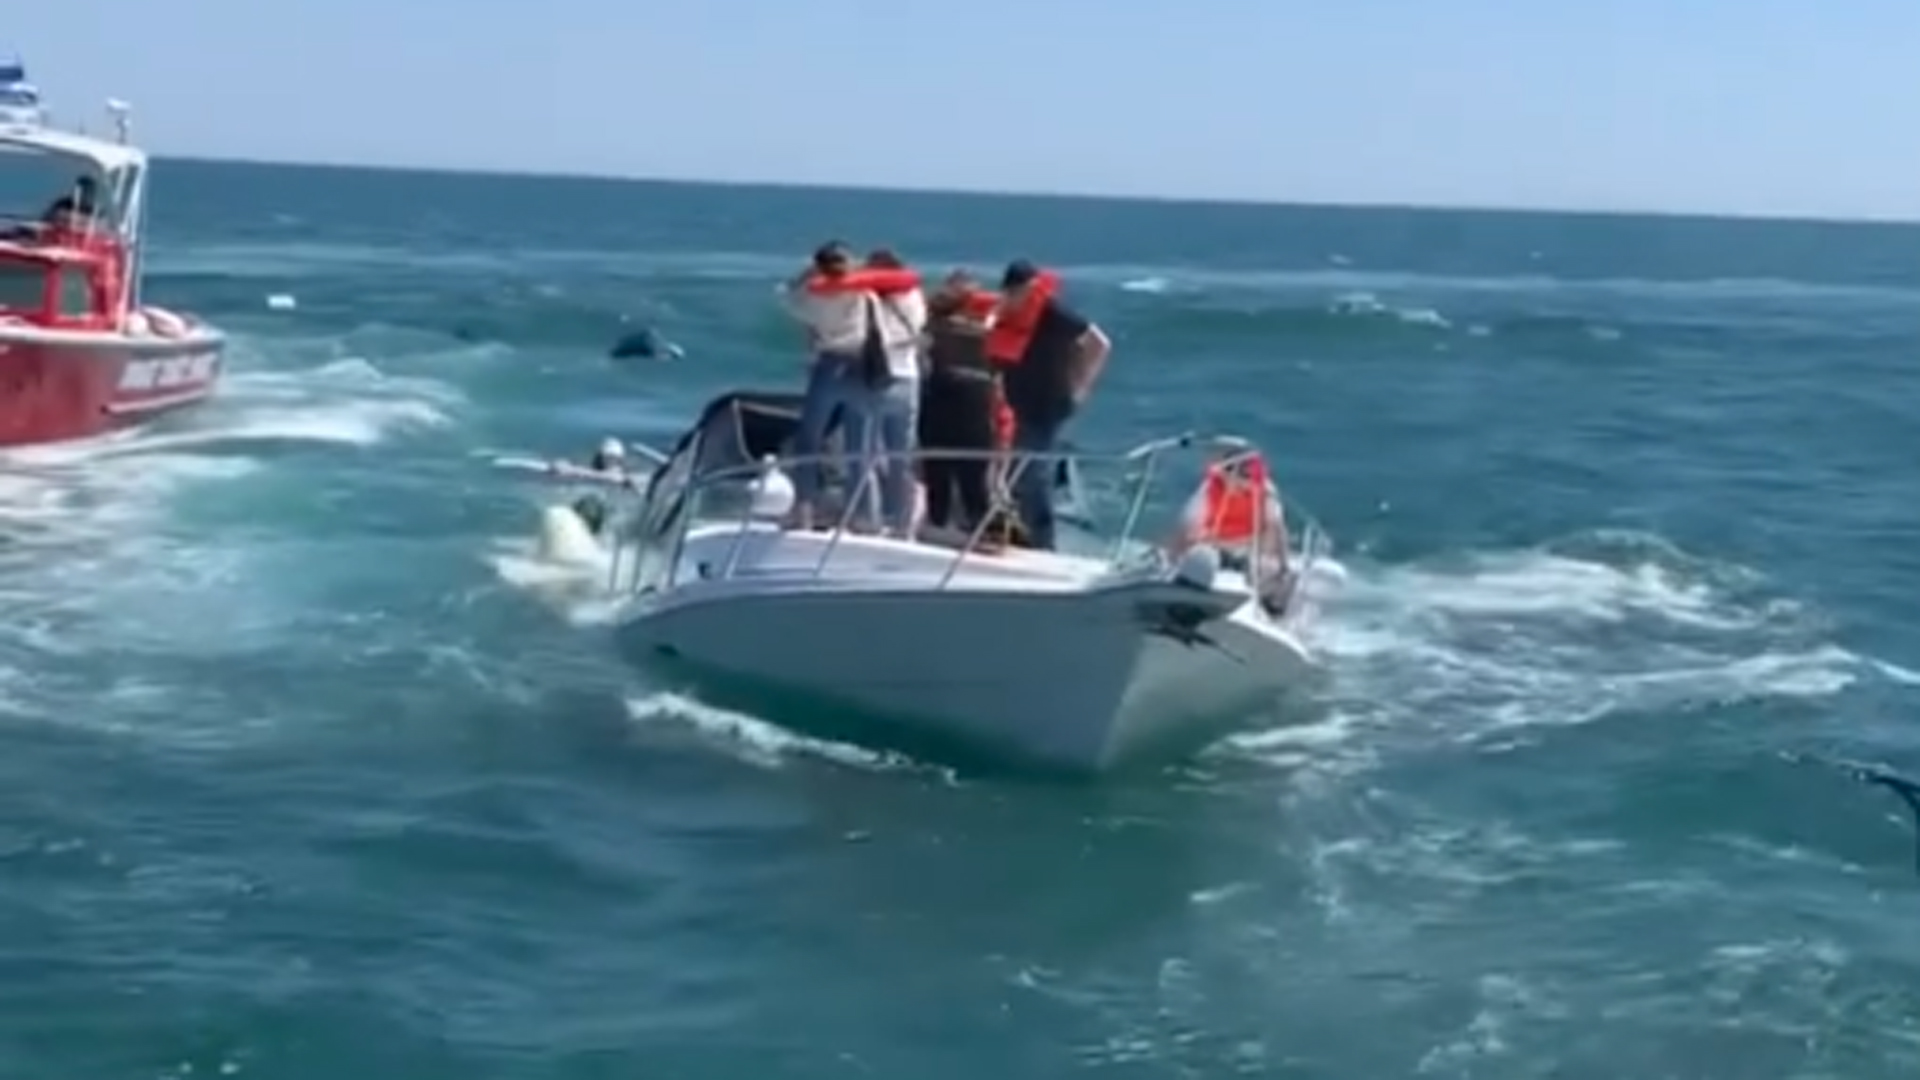 Video shared by the Orange County Sheriff's Department shows 14 people being rescued from a sinking boat off Newport Harbor on April 19, 2021.